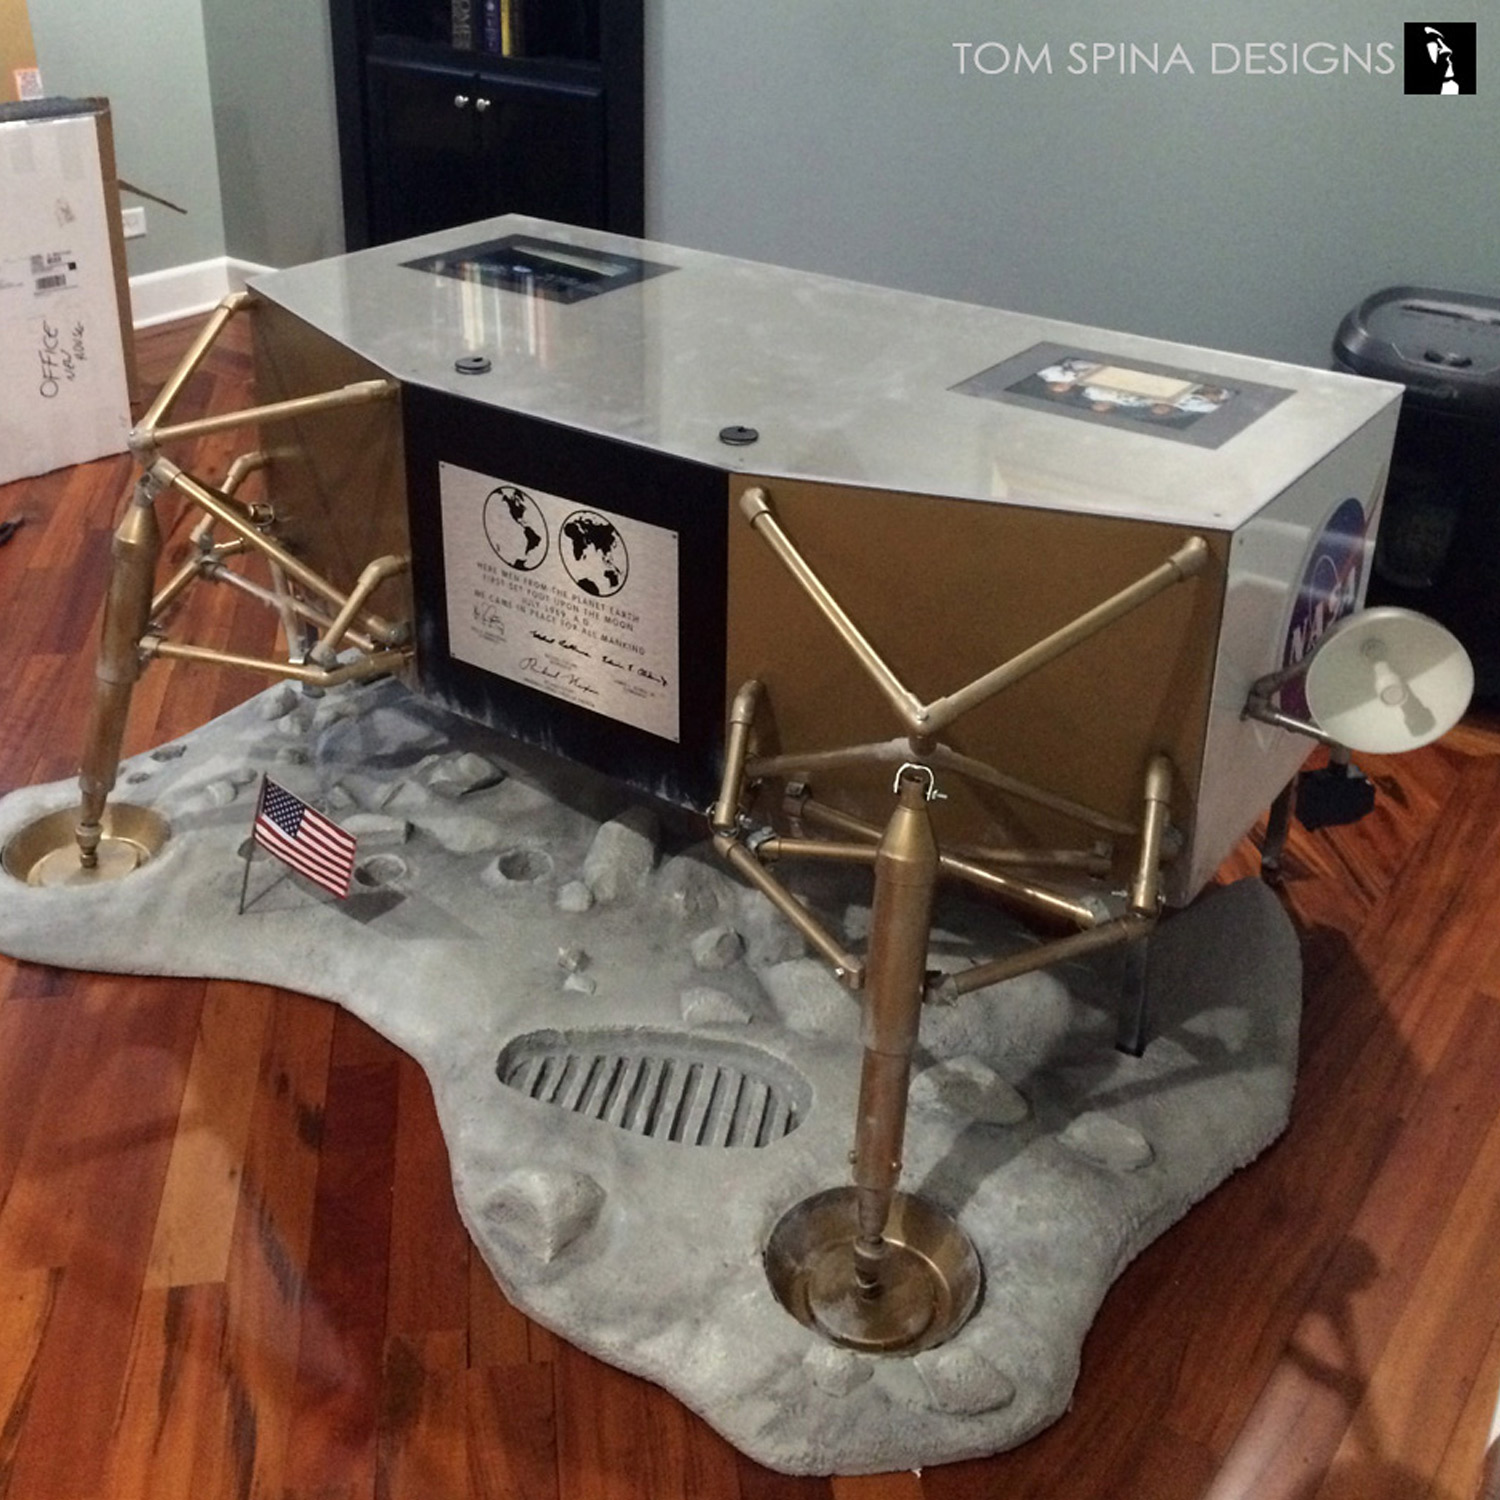 For slightly more sedate offerings from these shores  but no less  beautiful  check out our modern office desks section, featuring beauties  such as Partita ...